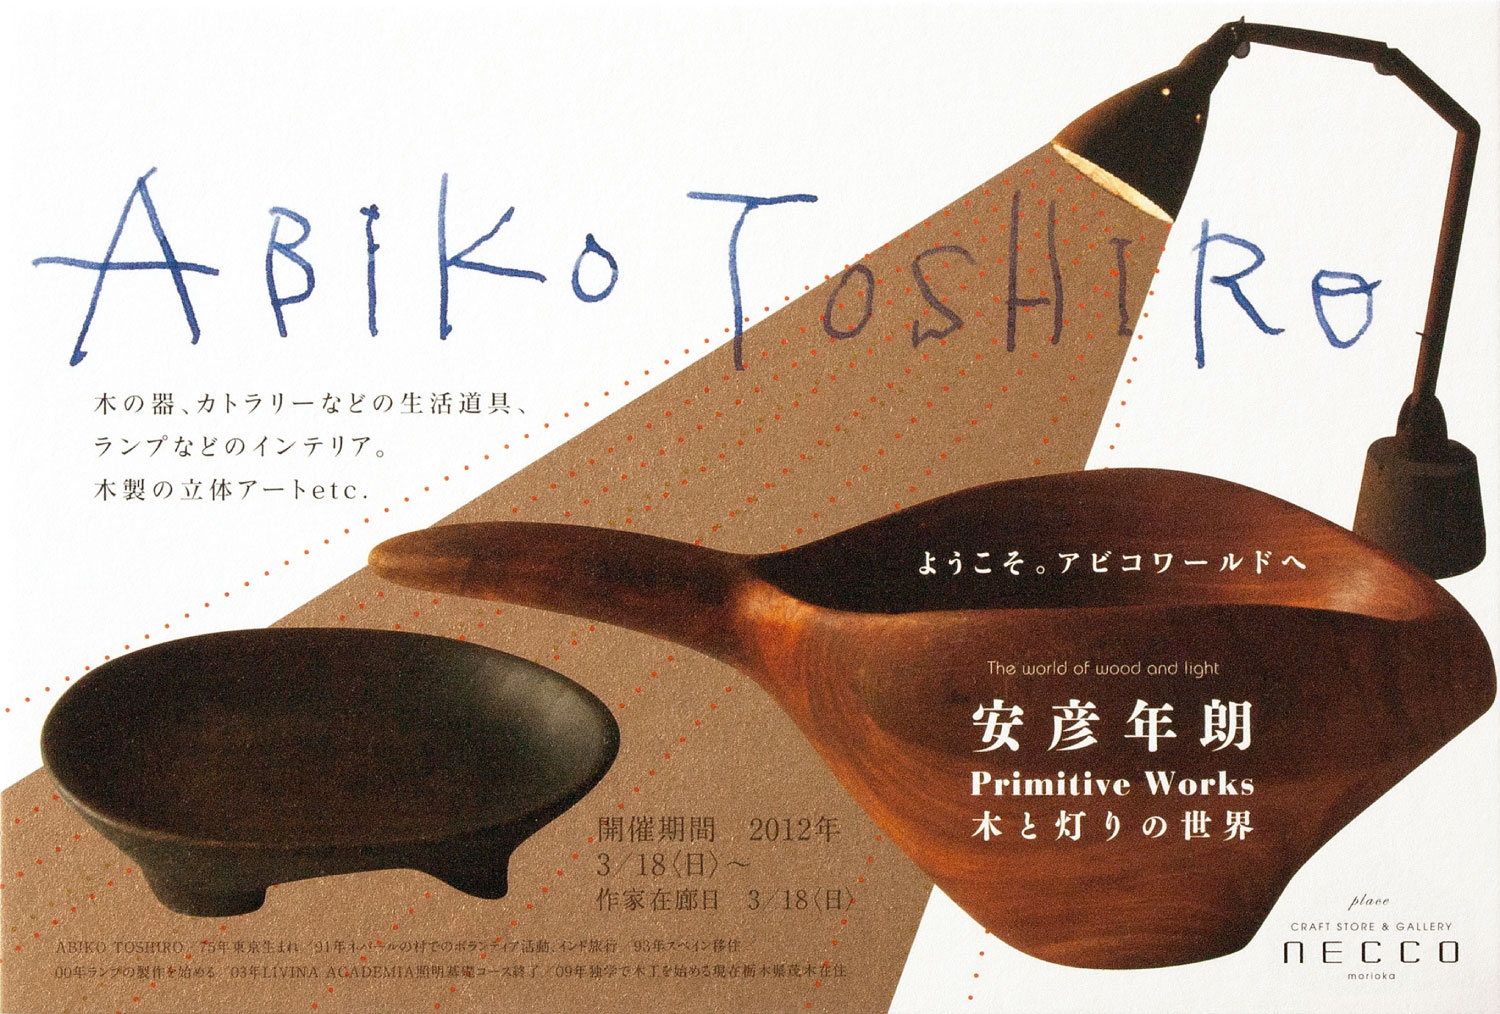 craft store&gallery necco Toshihiro ABIKO Primitive works Flyer